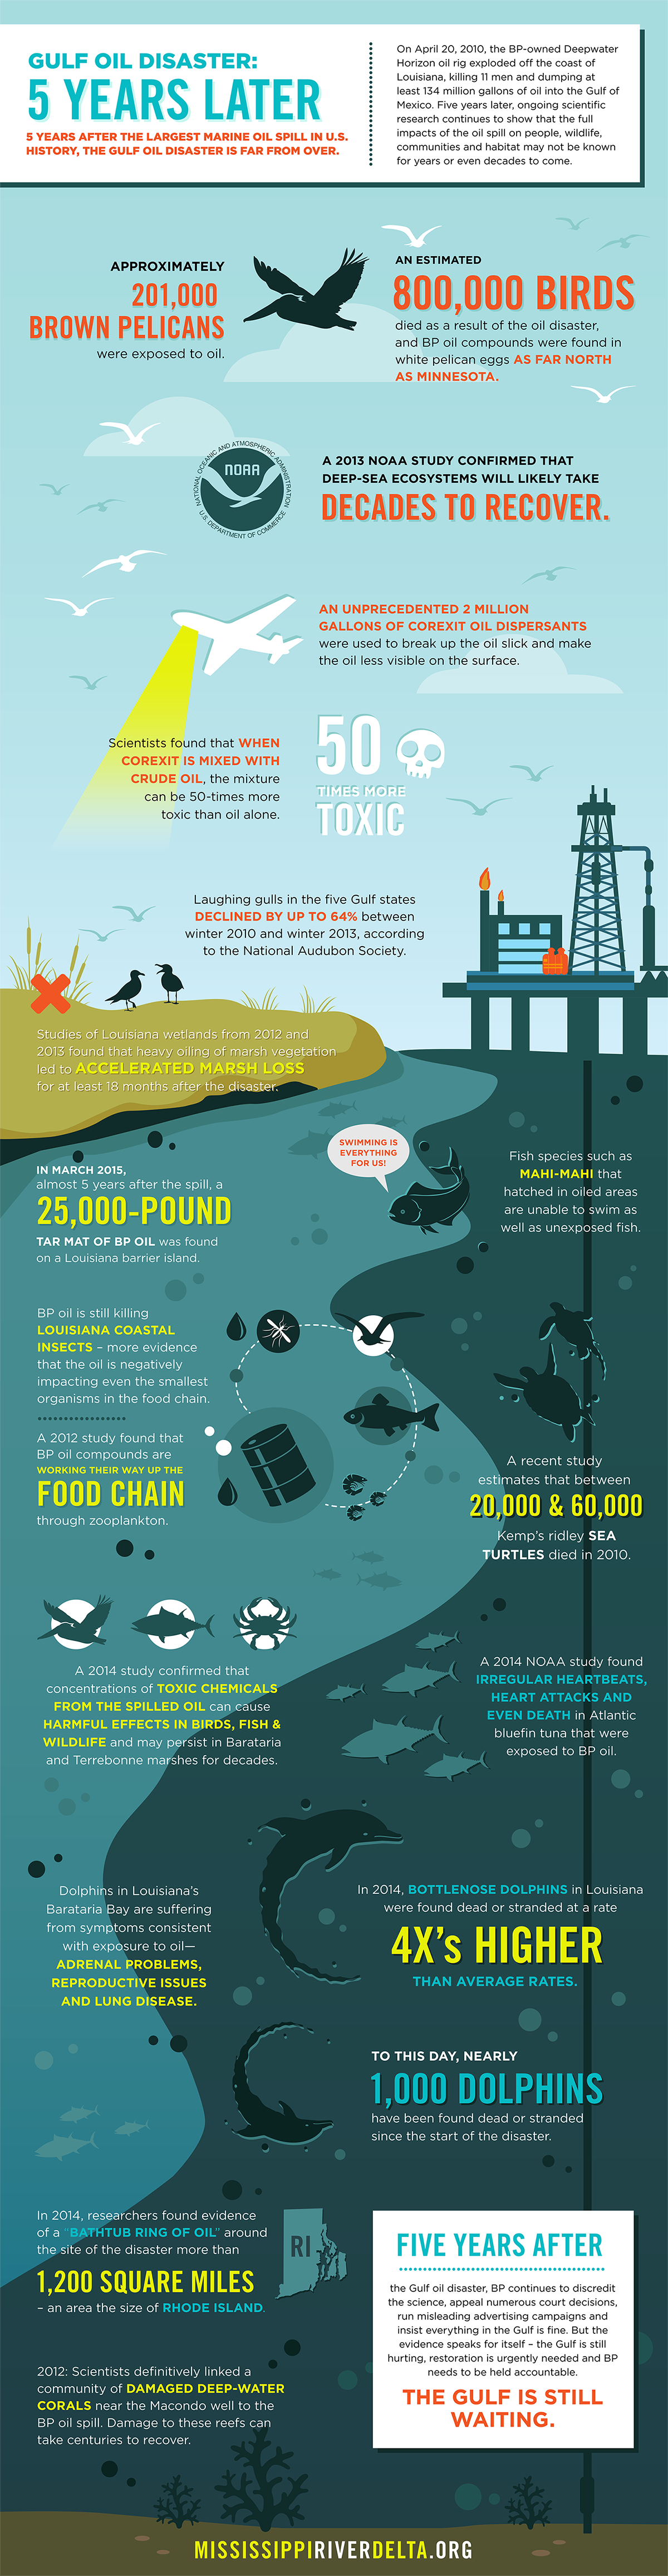 Gulf Oil Disaster: 5 Years Later Infographic